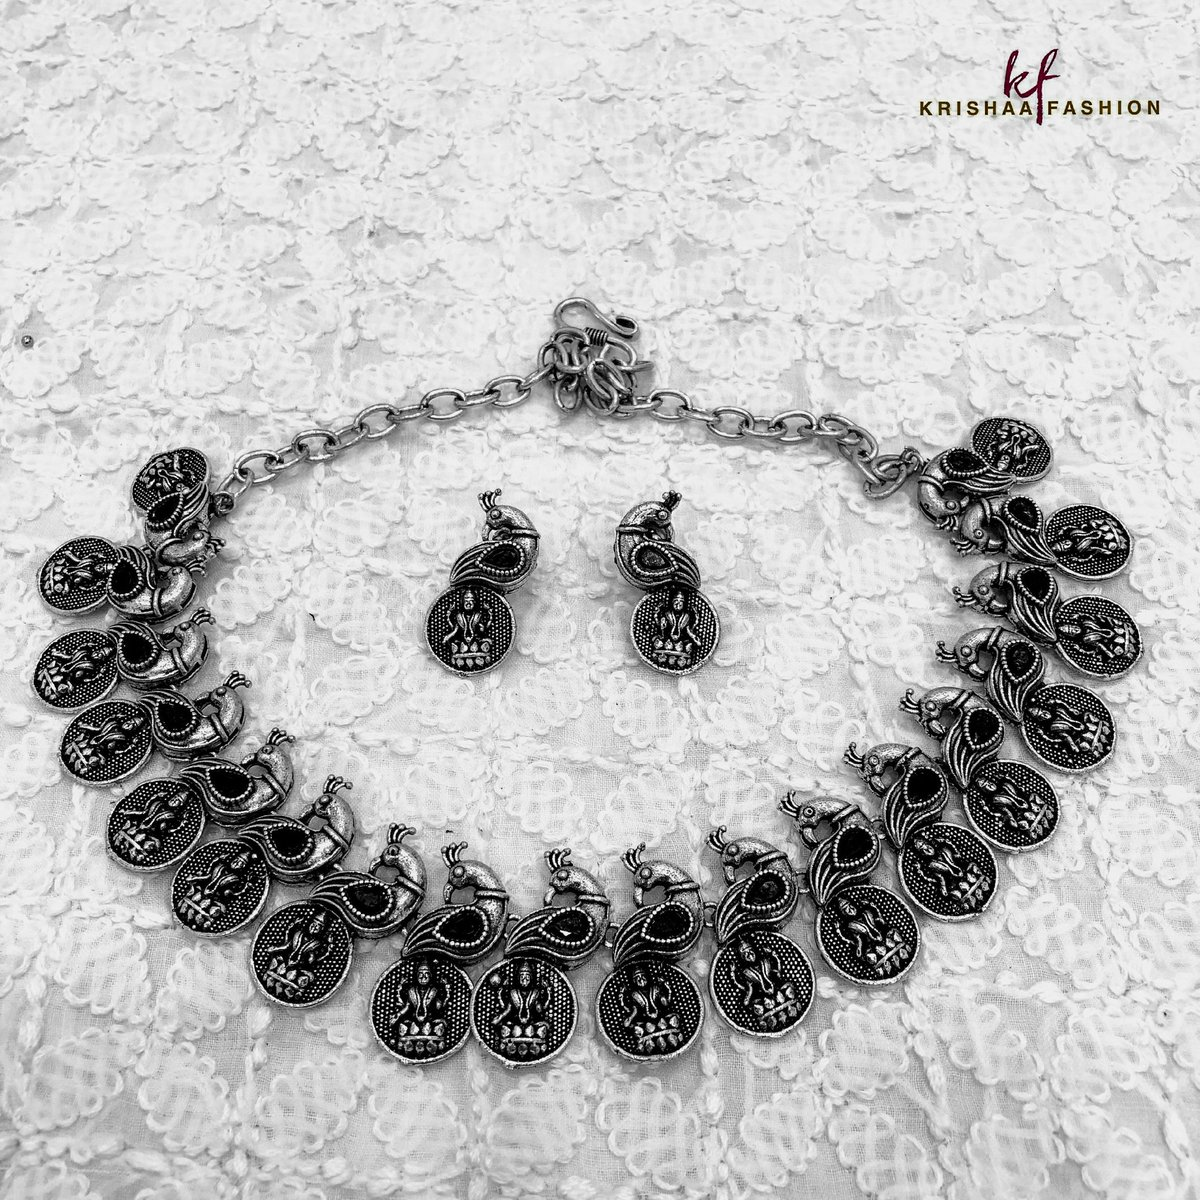 Oxidised Jewellery Necklace with Drop Earrings  #fashion #accessories #jewellery #jewelry #oxidized #oxidised #oxidisedjewellery #oxidisednecklace #oxidisedearrings #necklace #necklaceset #earrings #dropearrings #traditional #ethnic #ethnicwear #shopping #indianwear #ladieswearpic.twitter.com/Iw9Ld4TvXE